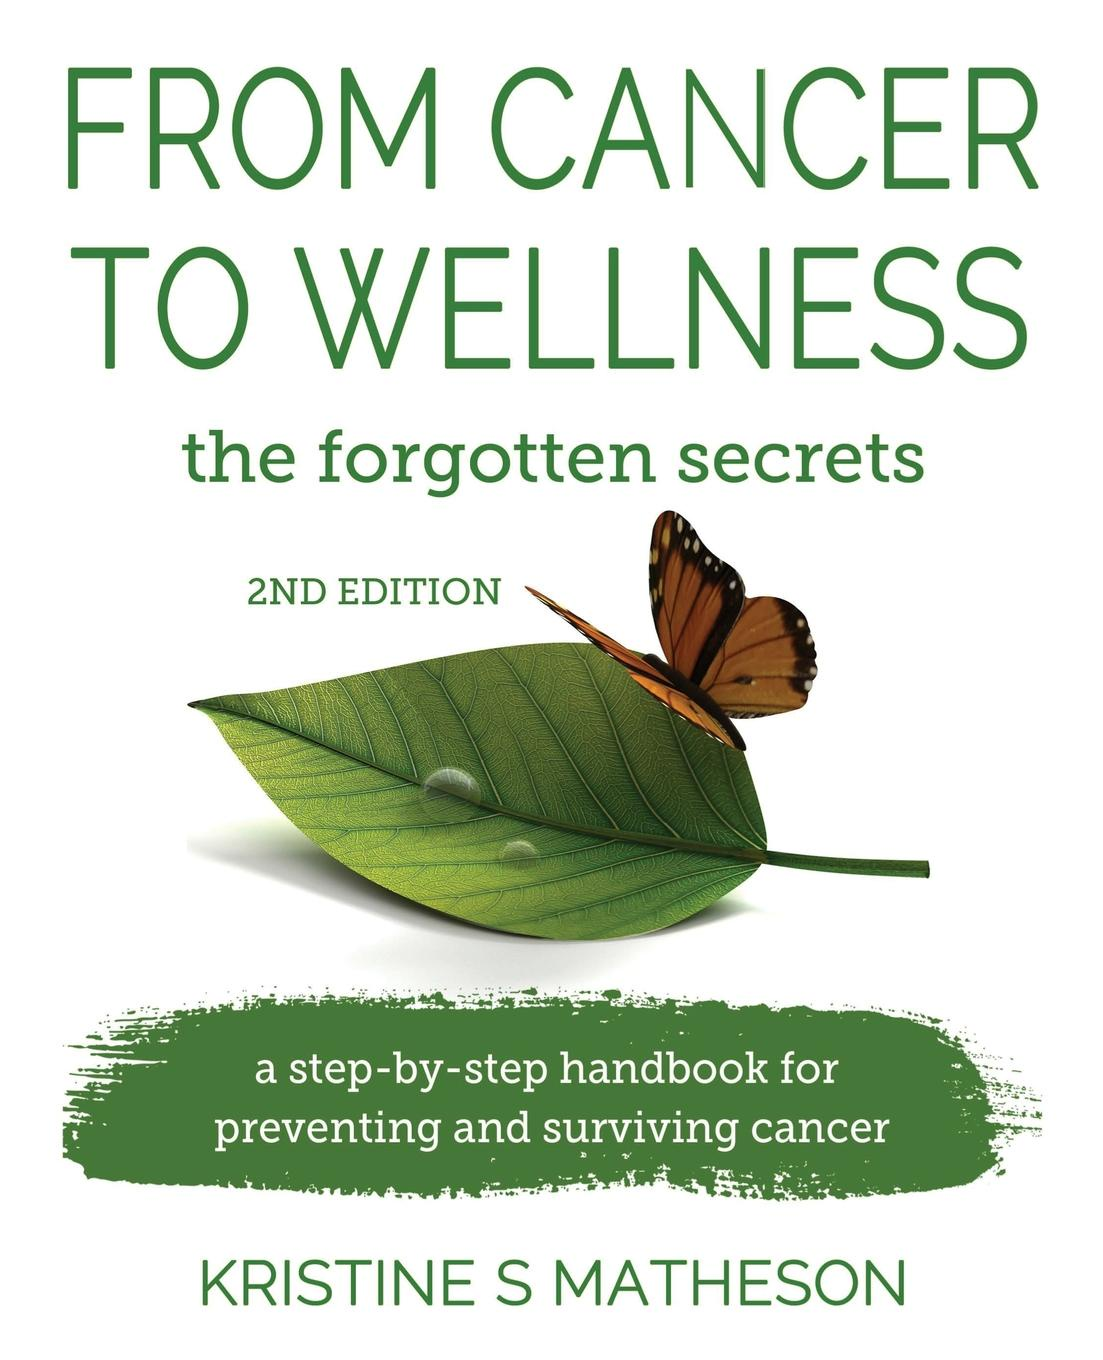 Kristine S Matheson From Cancer to Wellness. the forgotten secrets